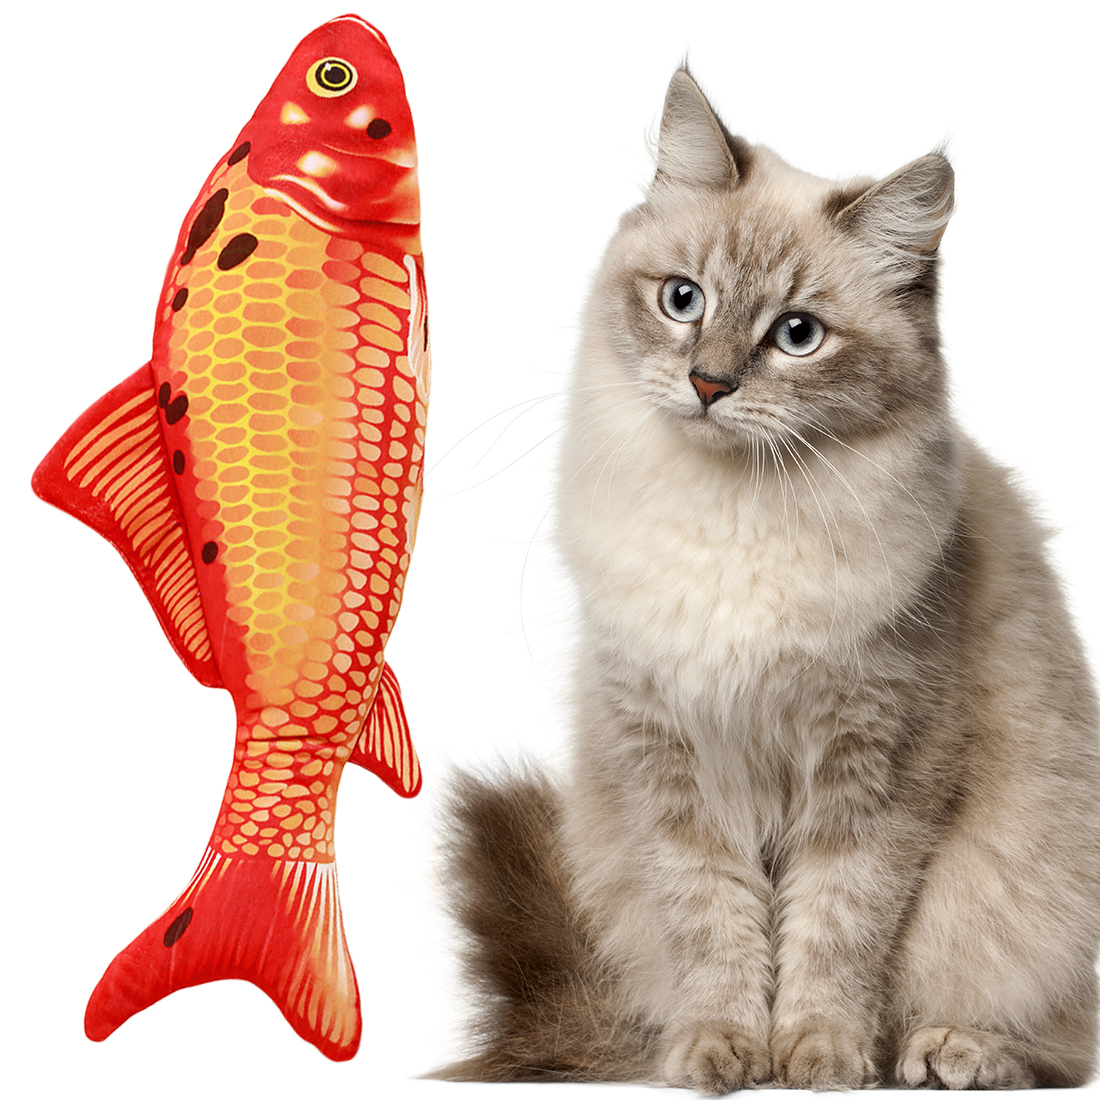 1PC Creative Pet Cat Kitten Chewing Cat Toys Catnip Stuffed Fish Interactive Kitten Product Cat Supplies Hot Sale